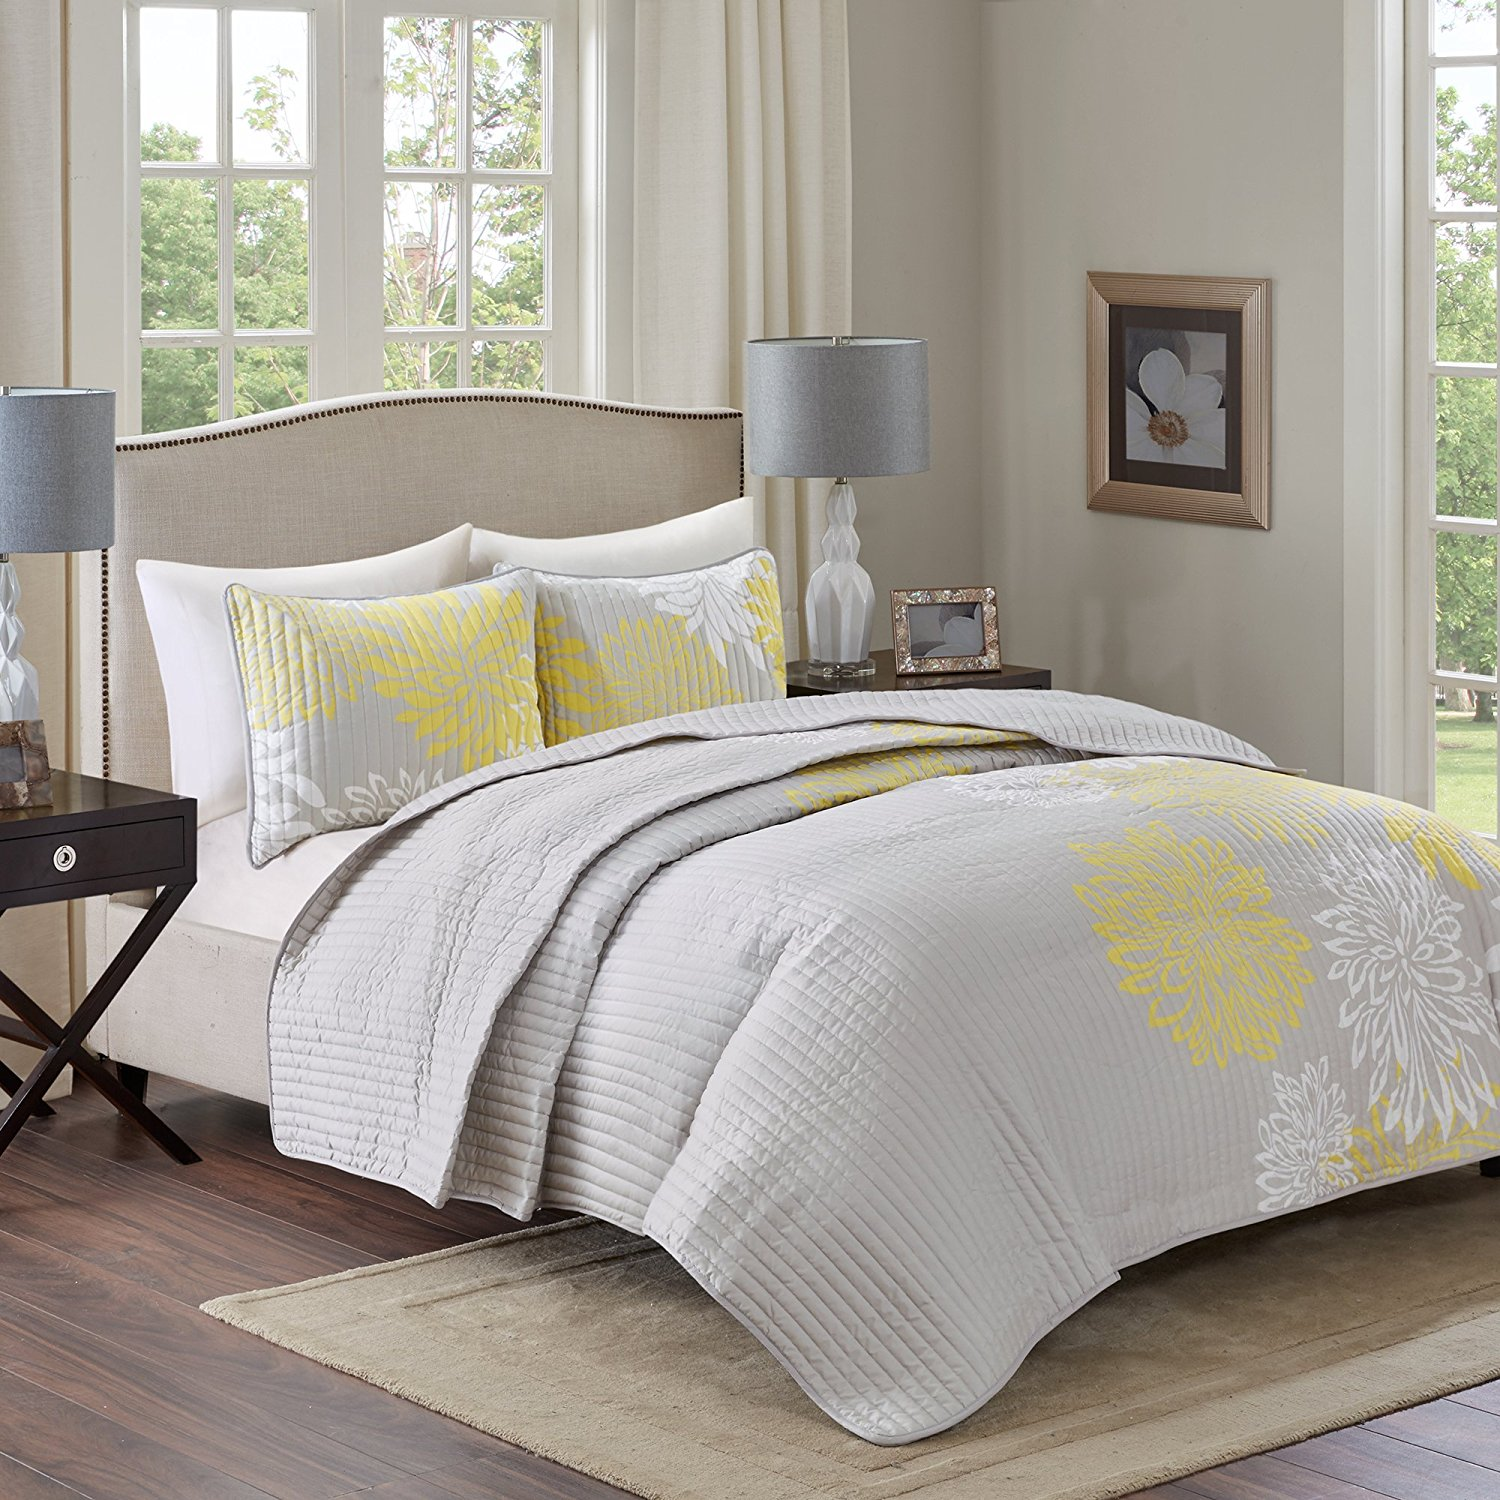 Comfort Spaces – Enya Quilt Mini Set - 3 Piece – Yellow and Grey – Floral Printed Pattern – Full/Queen Size, Includes 1 Quilt, 2 Shams